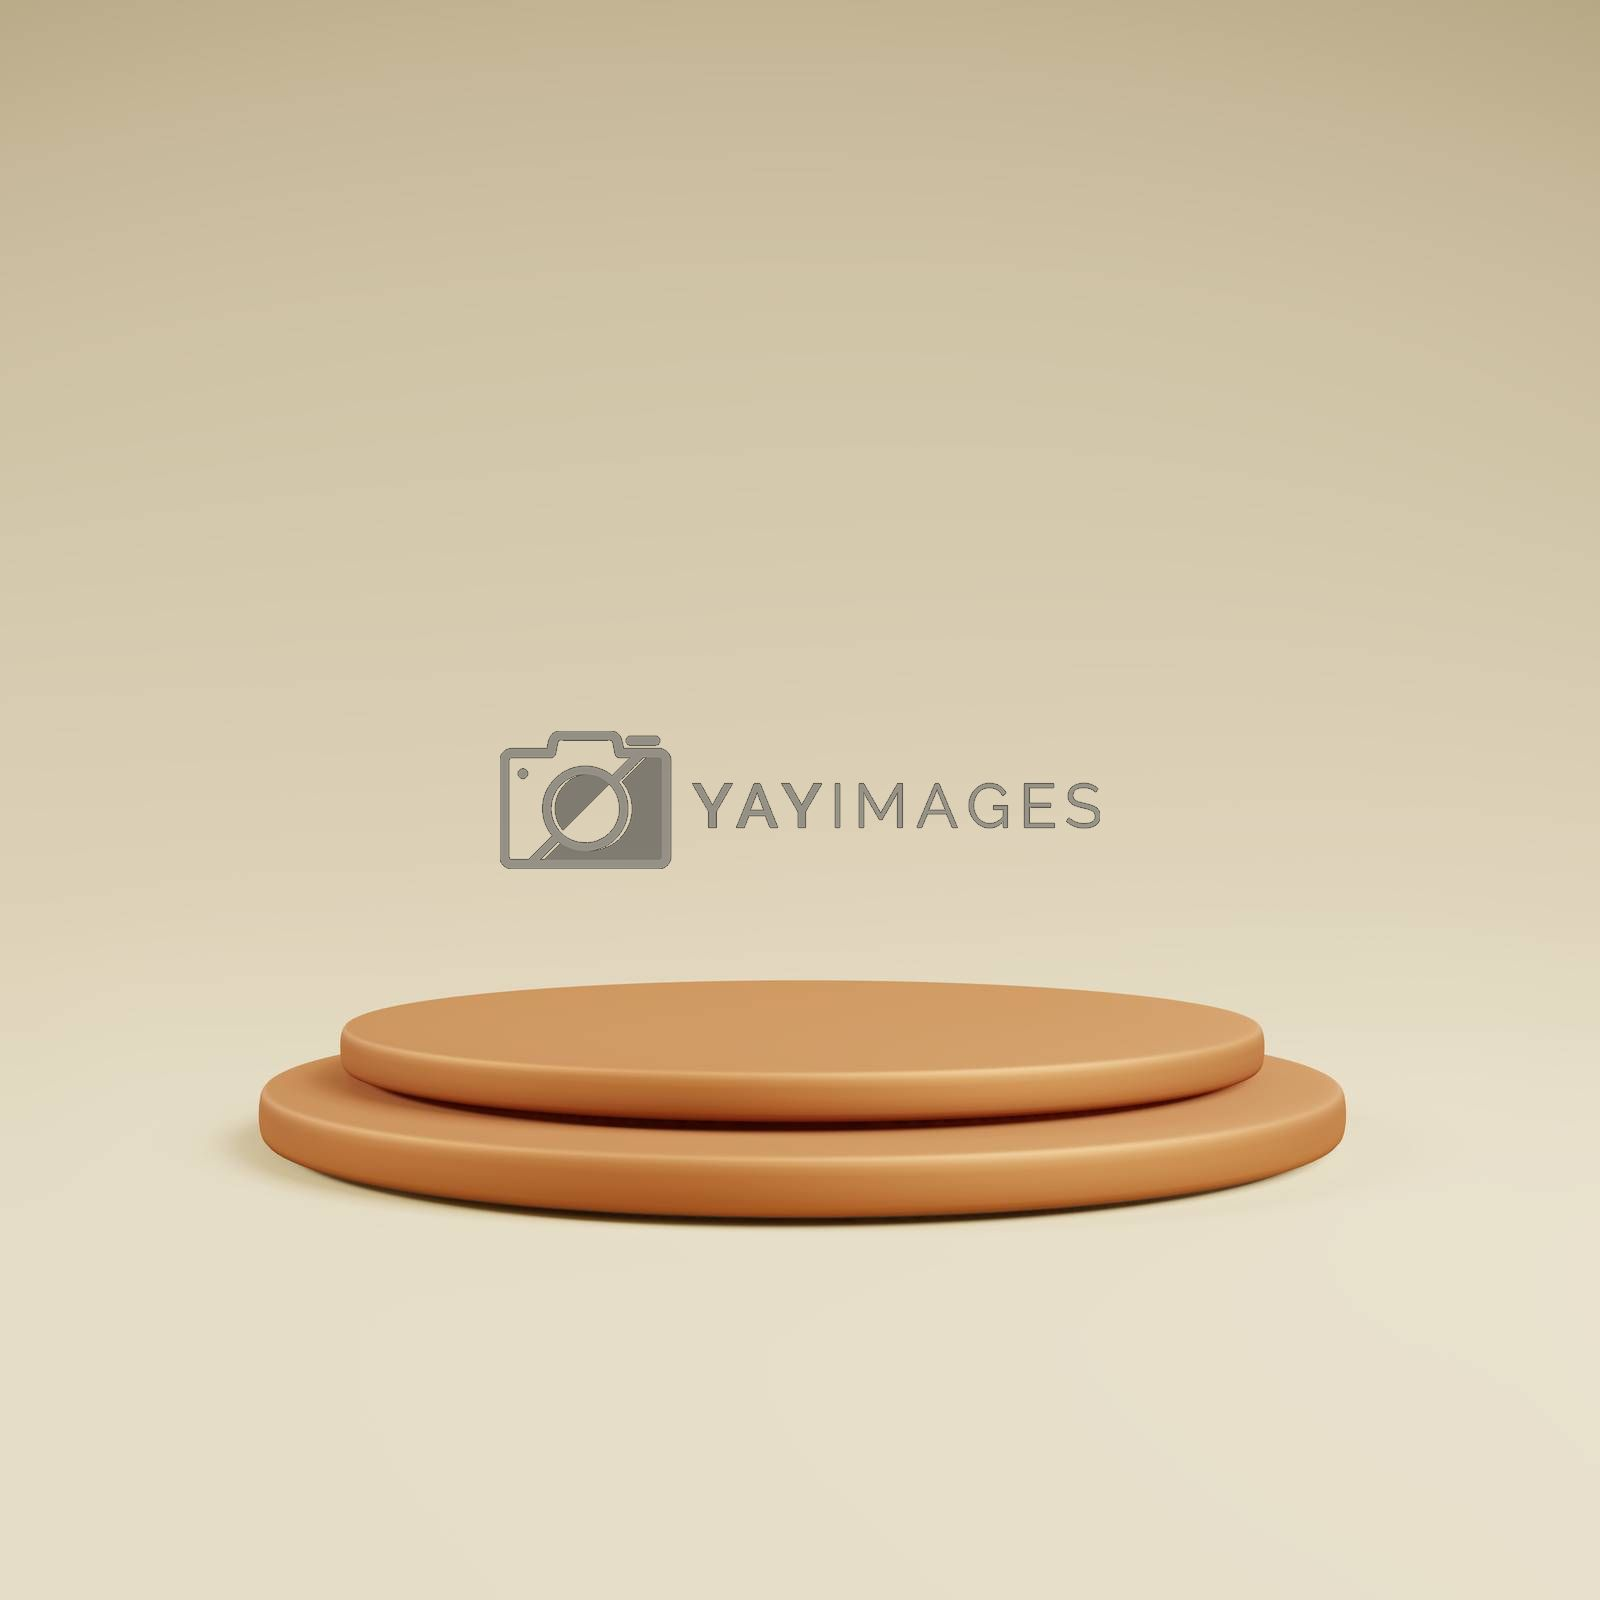 Royalty free image of Orange podium or stage for show product with yellow background by eaglesky